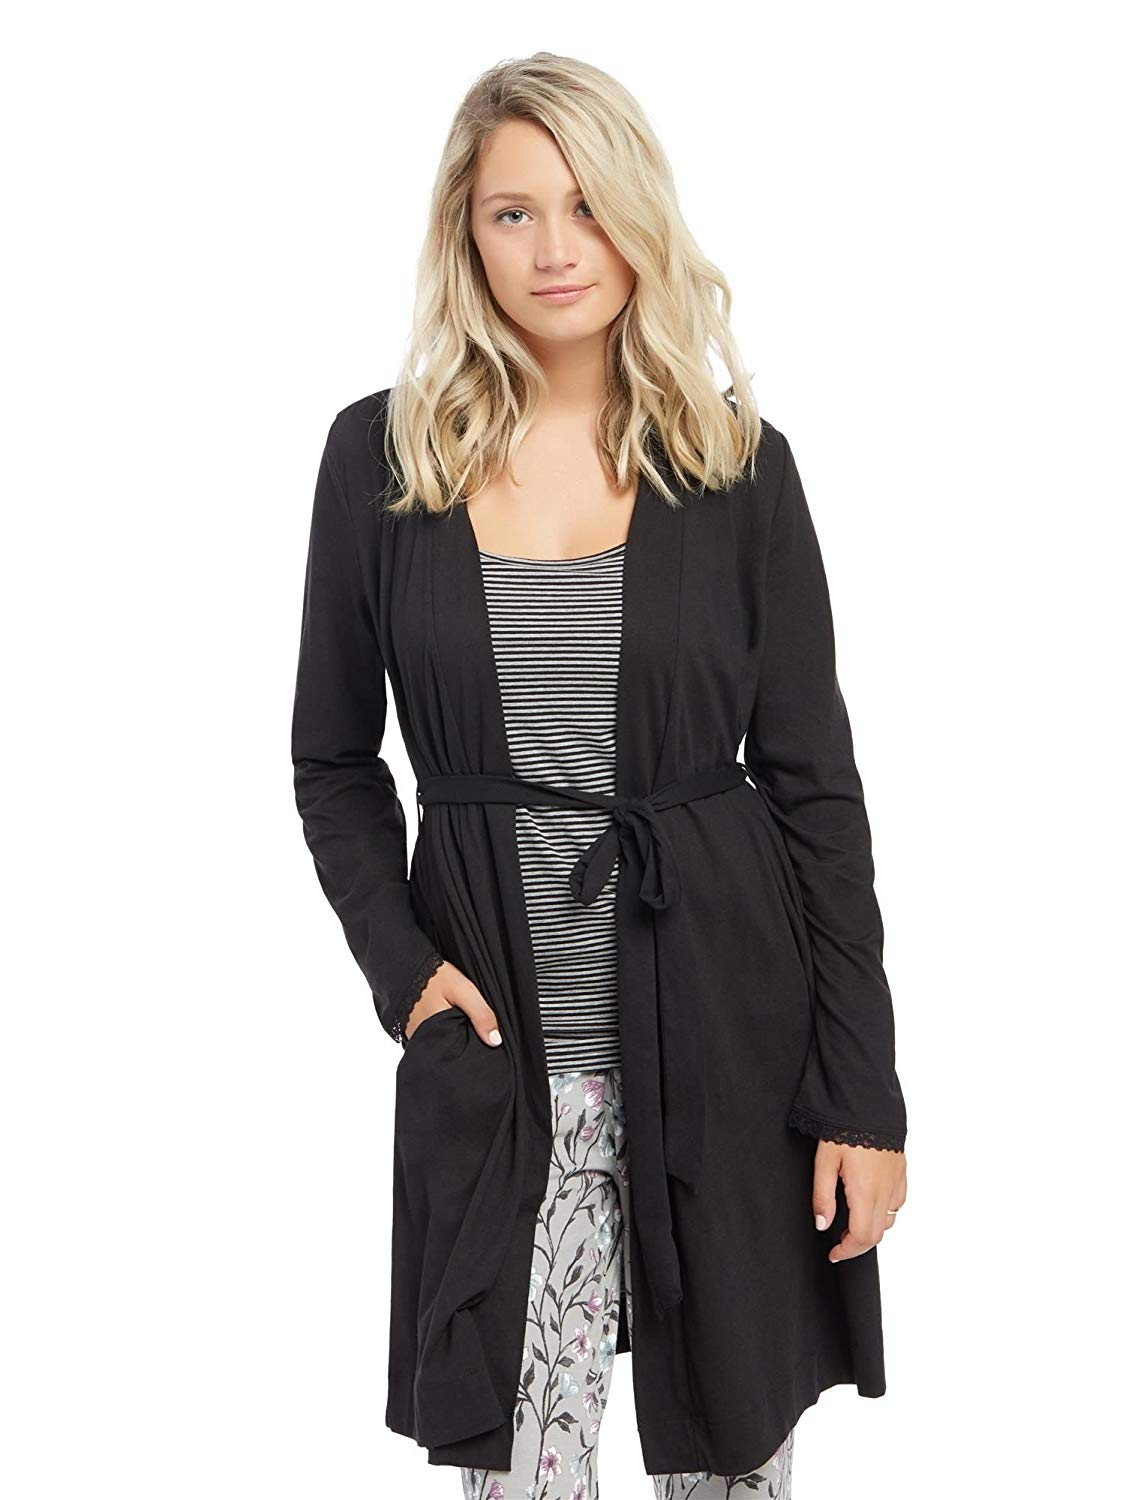 6782d59b4f3eb Get Quotations · Motherhood Maternity Women's Maternity Tie Front Nursing  Robe with Lace Trim Sleeve